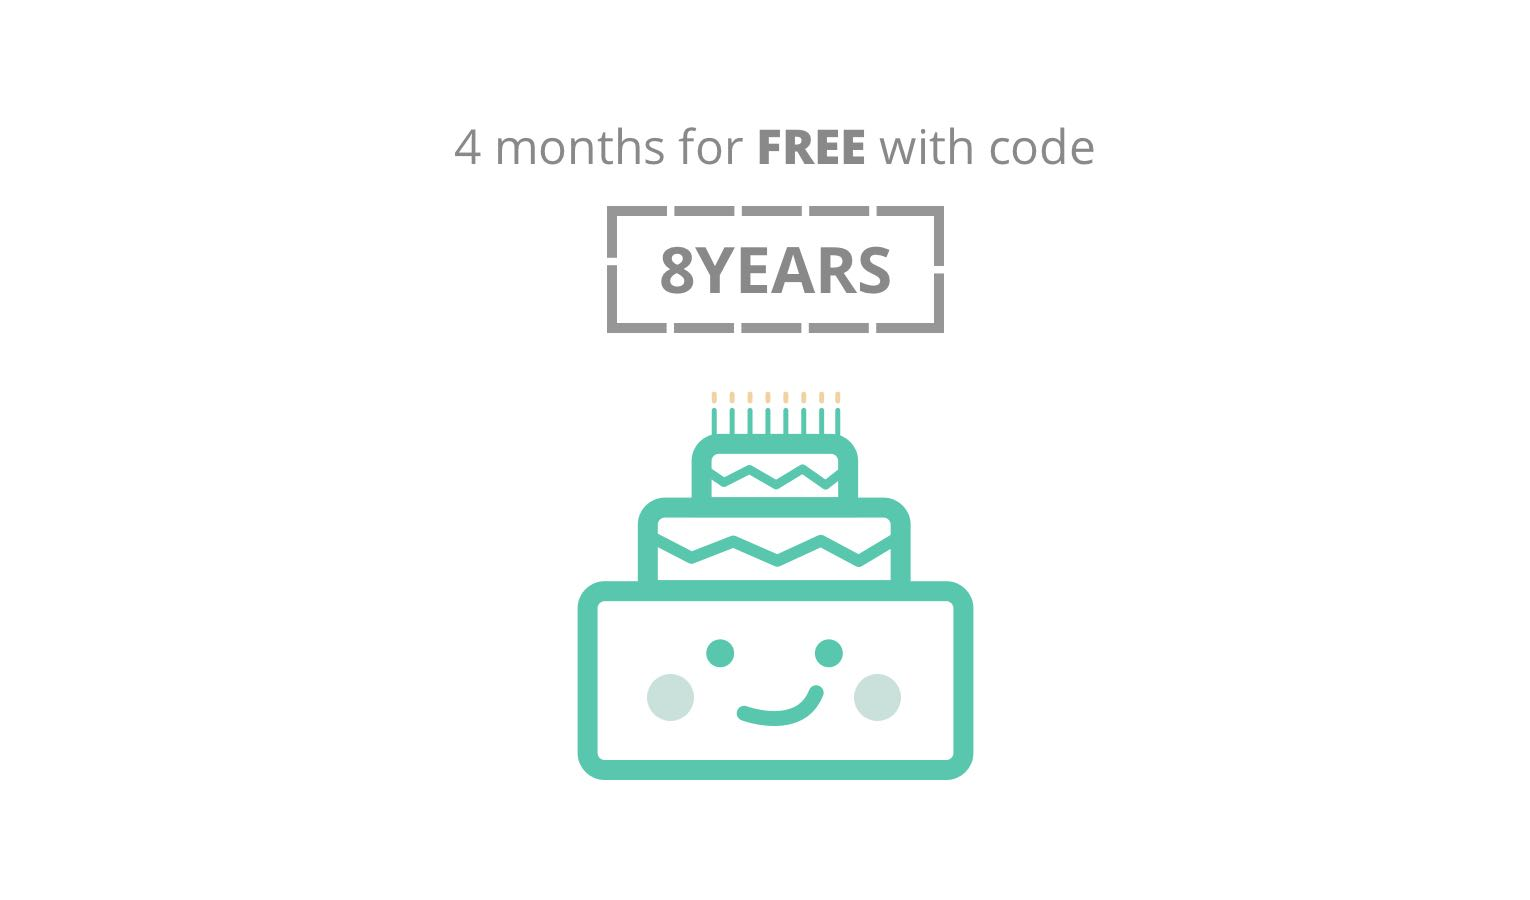 Image of 8th anniversary with coupon code 8YEARS and 4 months free